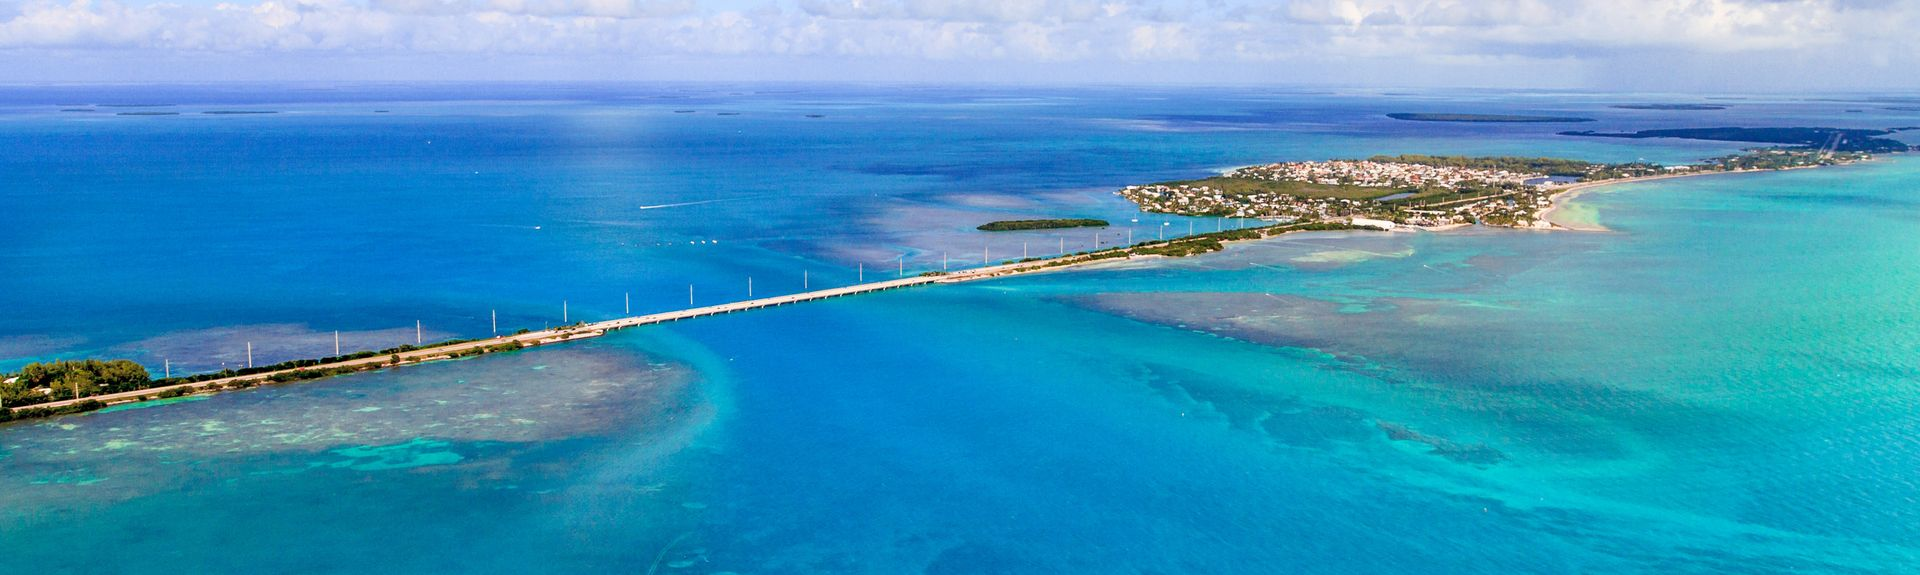 Lower Florida Keys, USA